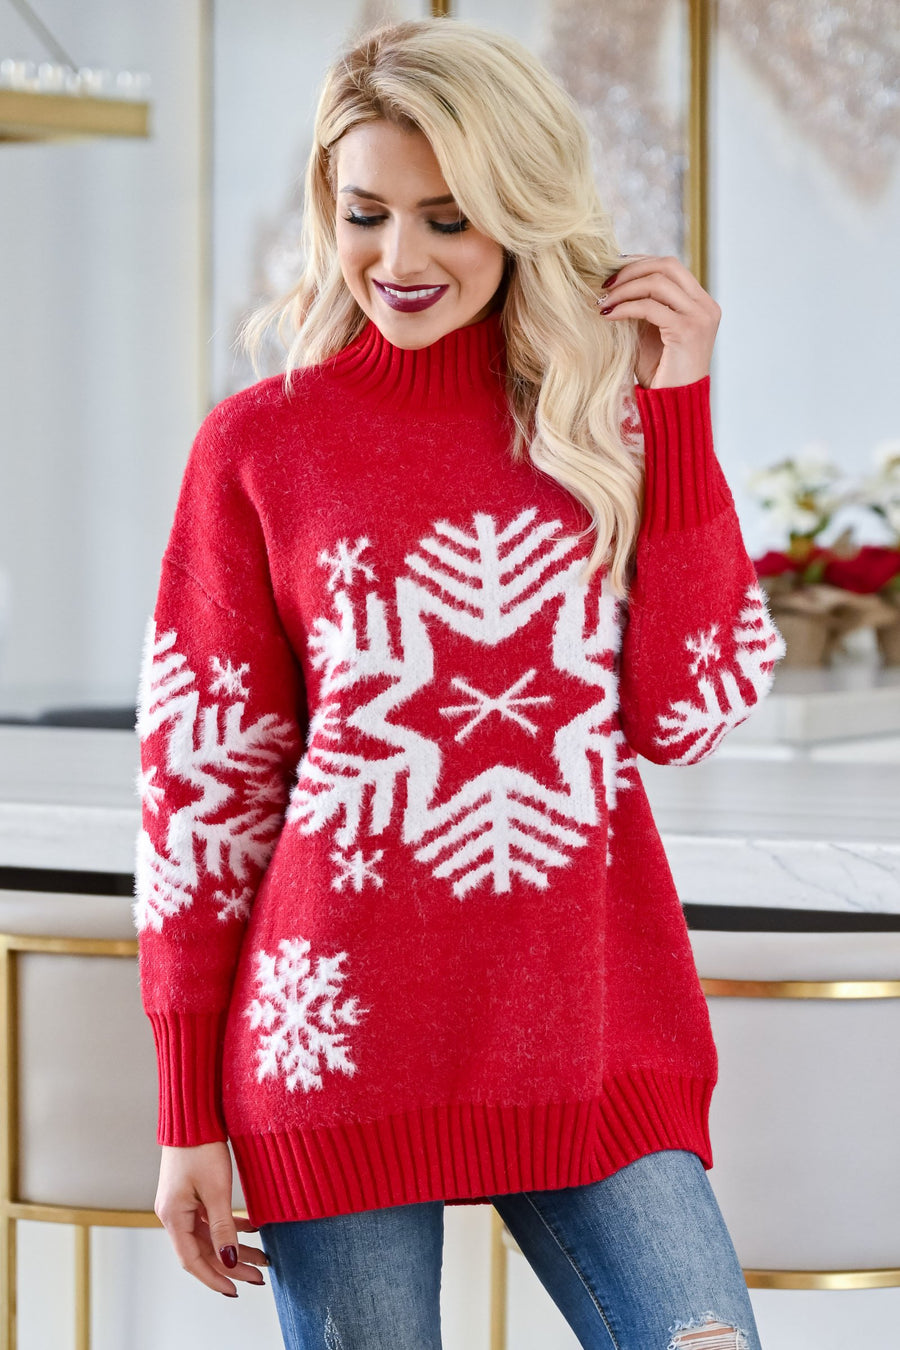 Catching Snowflakes Pullover Sweater - Red womens trendy long sleeve fuzzy snowflake pullover closet candy sitting